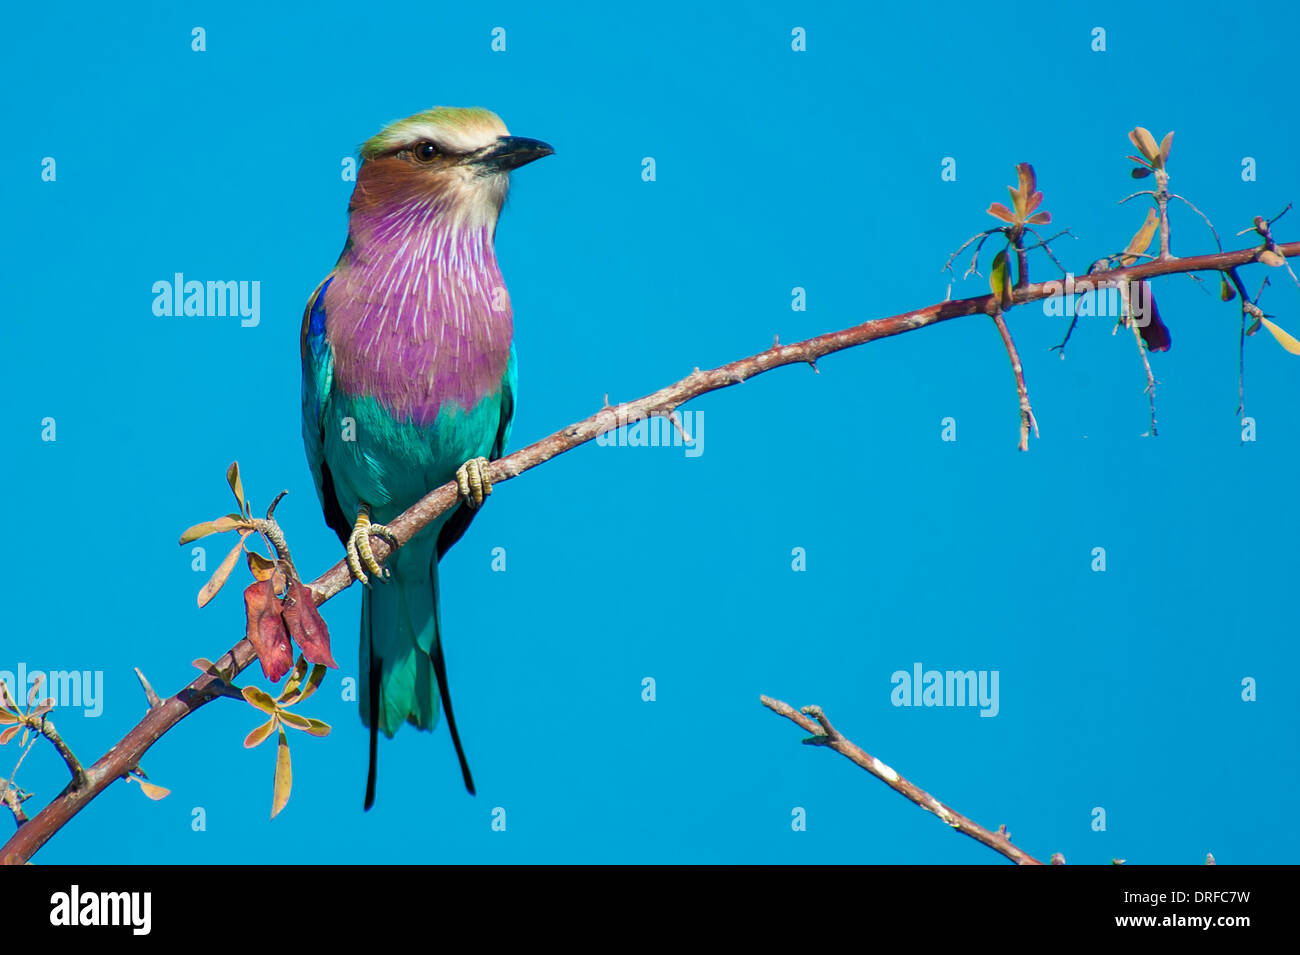 Lilac-breasted roller (Coracias caudata) - Stock Image